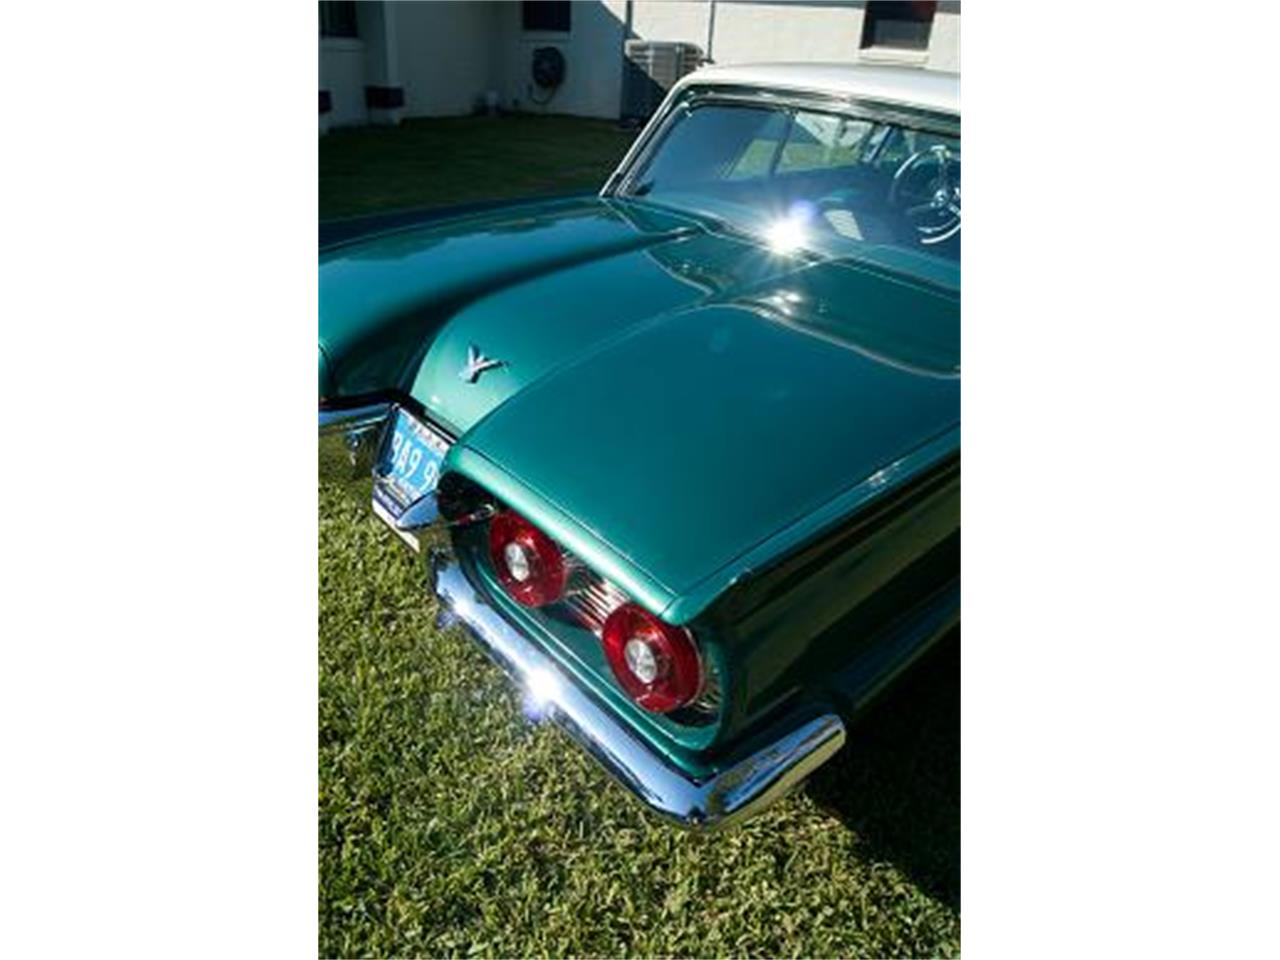 Large Picture of Classic '59 Ford Thunderbird located in Cocoa Florida - $15,500.00 Offered by a Private Seller - LLRY